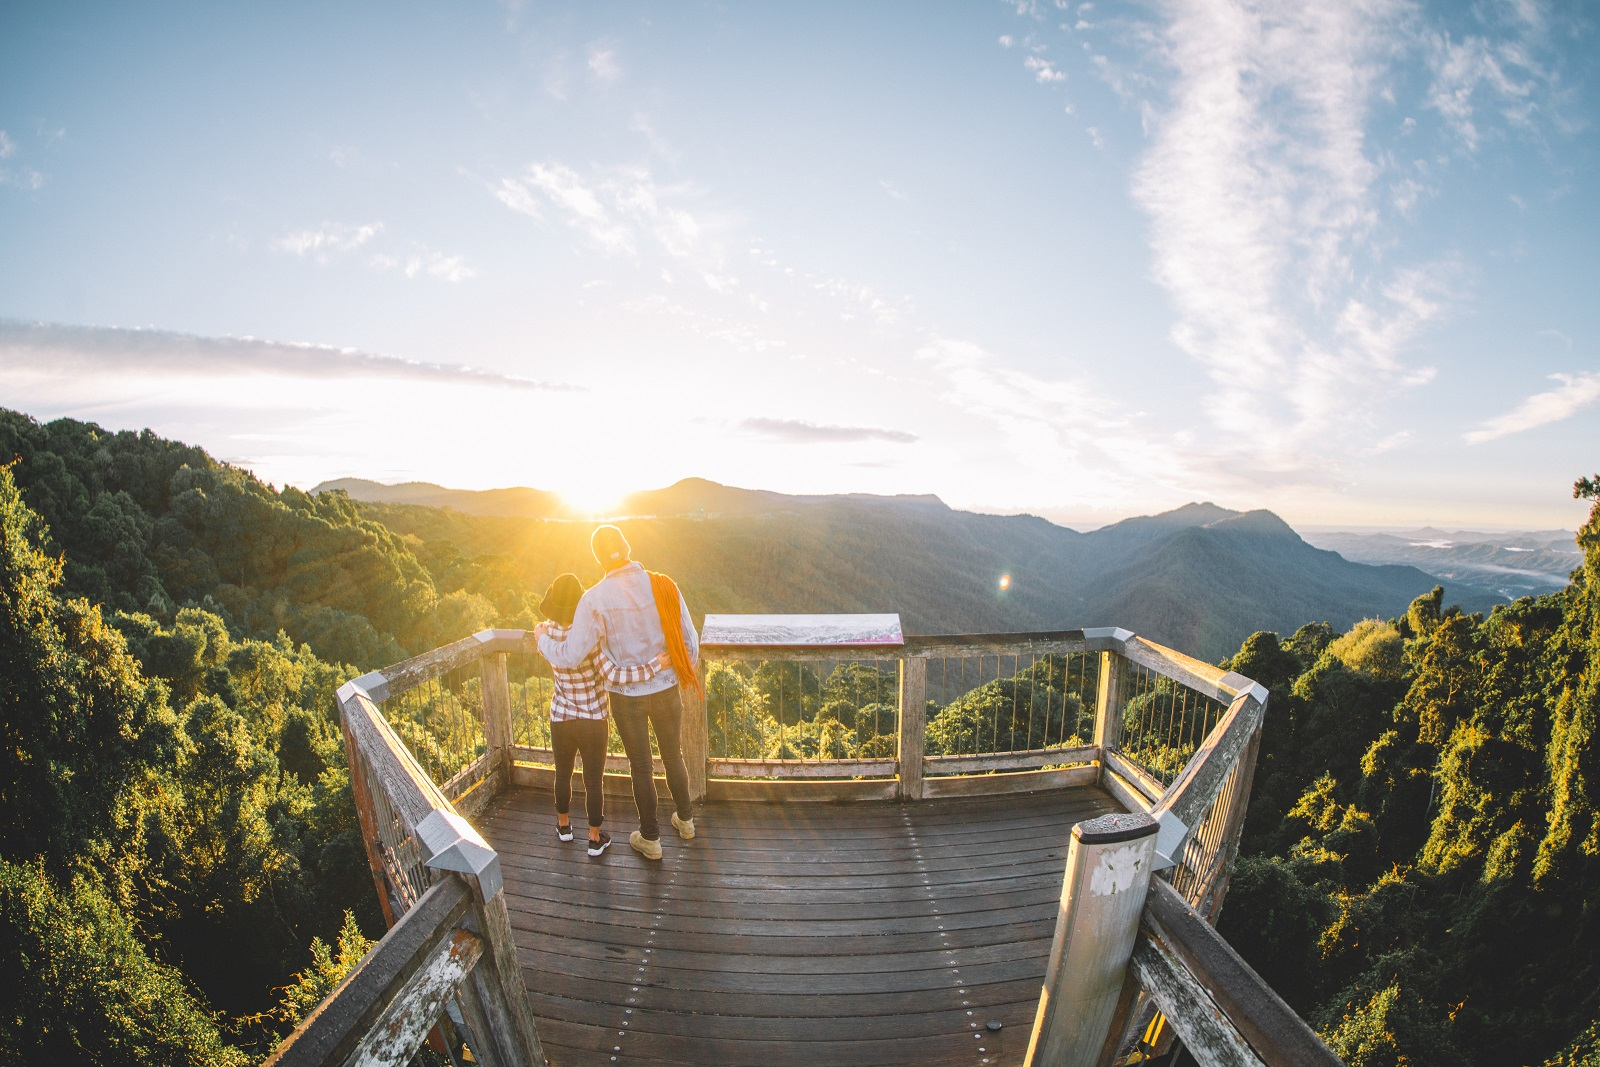 Couple enjoying the view at Skywalk lookout in Dorrigo National Park. Photo: Branden Bodman/OEH